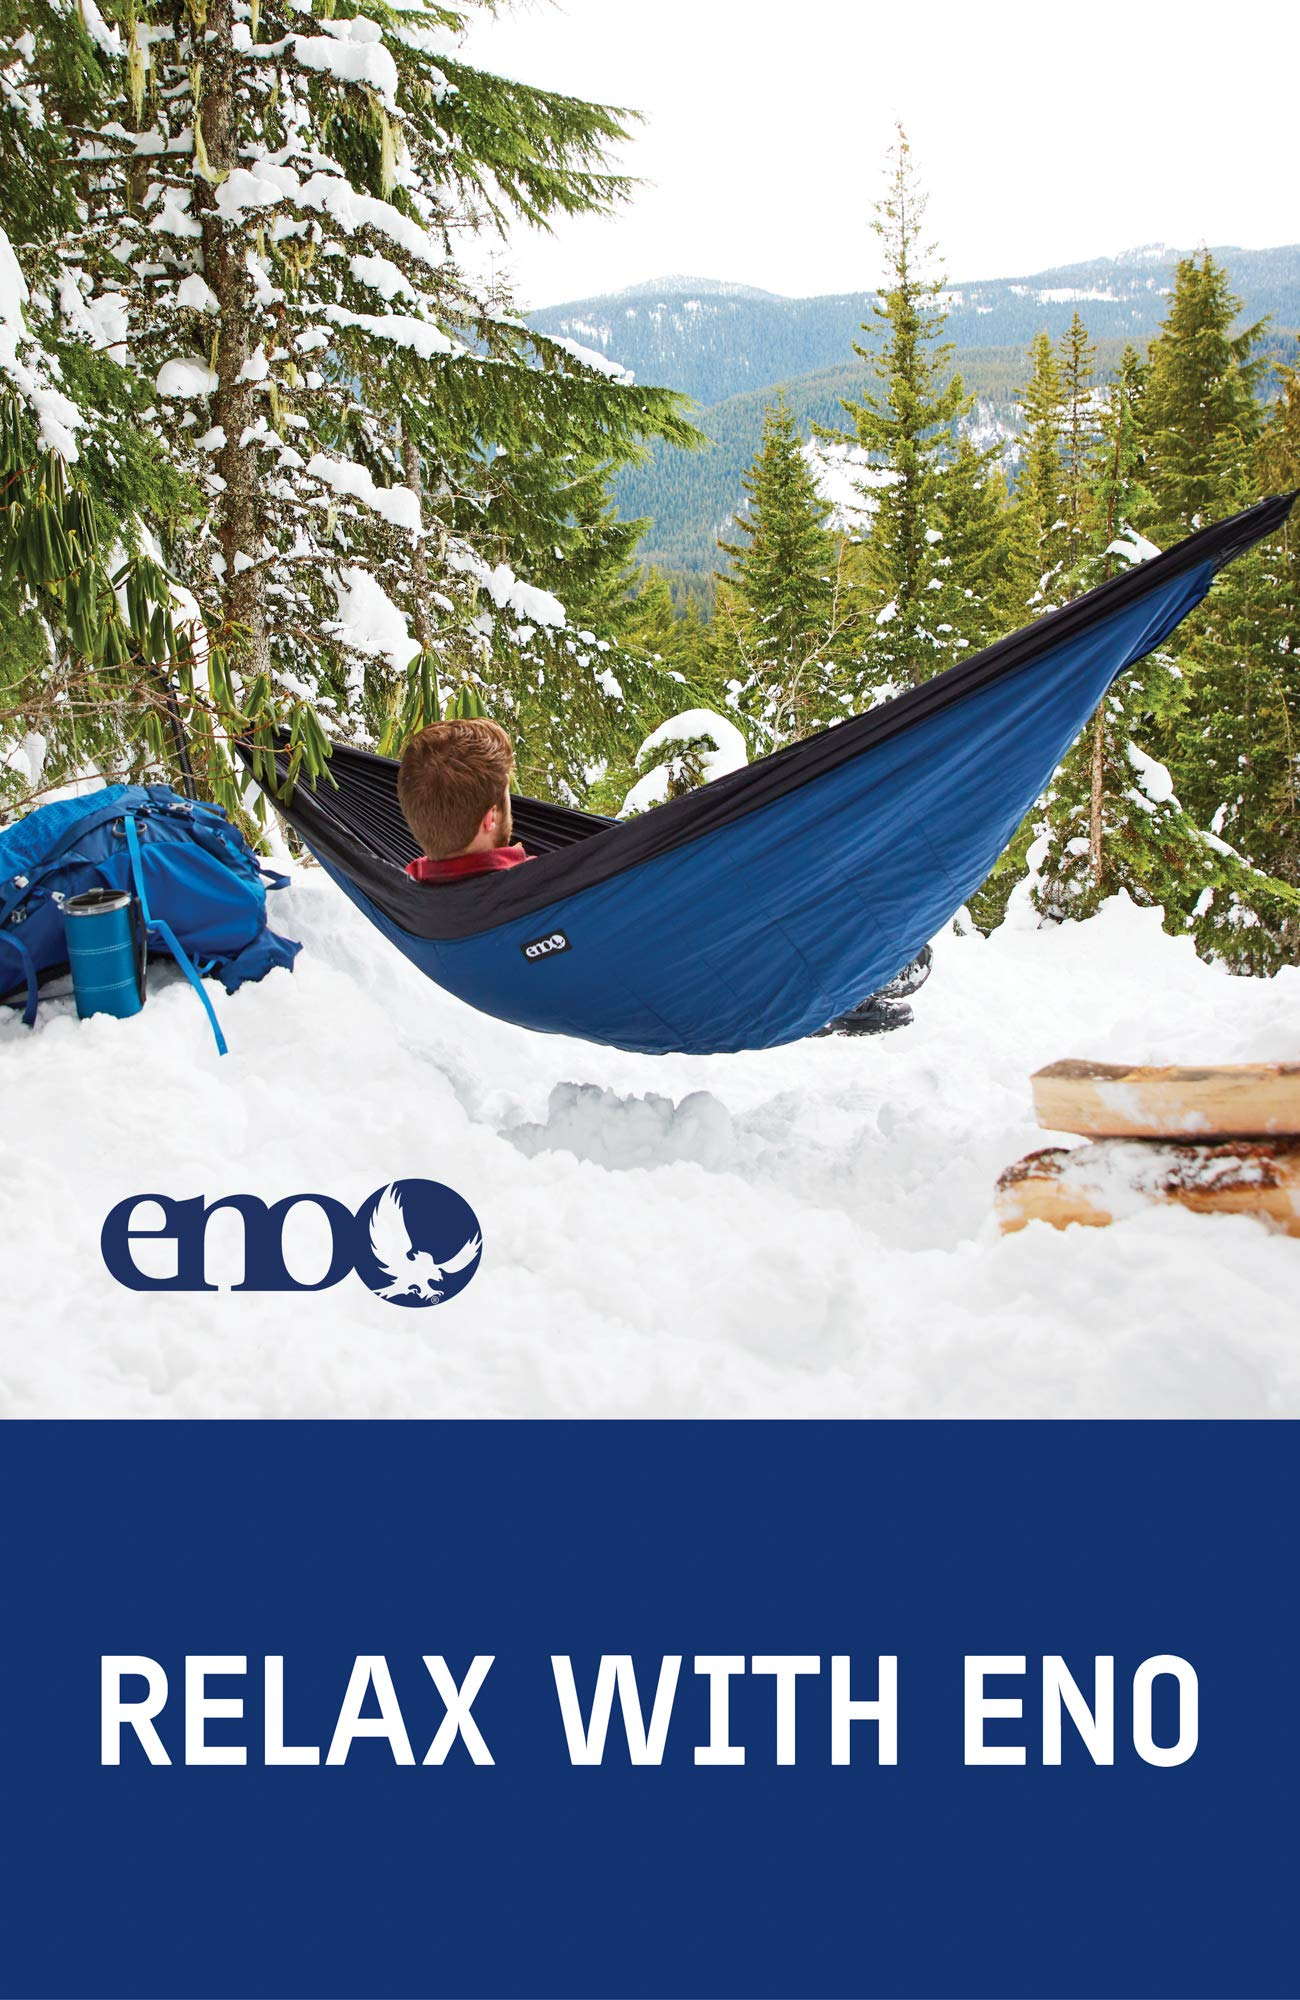 ENO - Eagles Nest Outfitters Ember Hammock UnderQuilt, Lightweight Sleeping Quilt for Cold Weather Camping, Charcoal/Red        by ENO